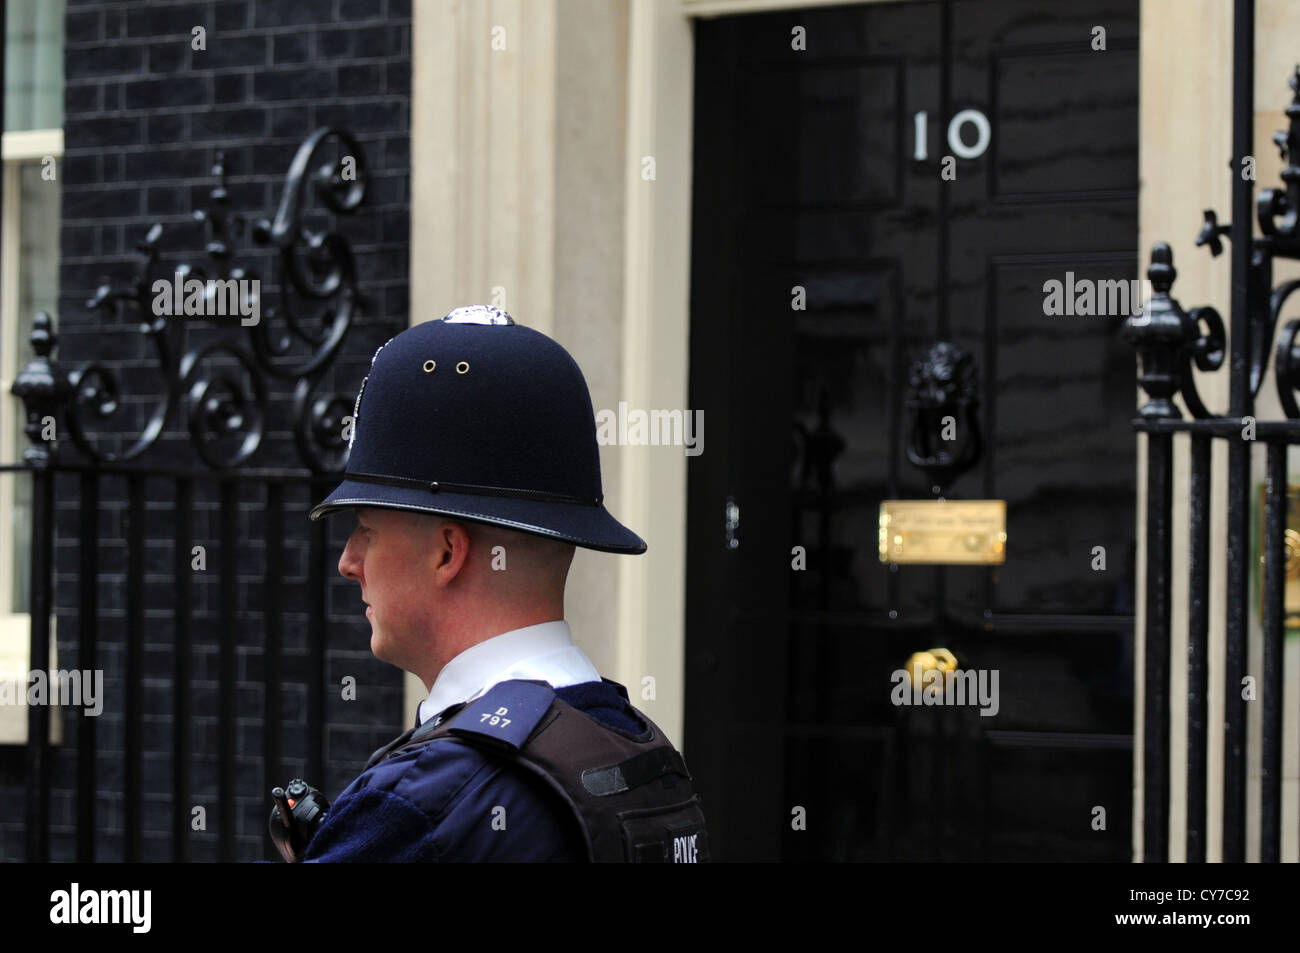 British policeman outside Number 10 Downing Street, London, UK - Stock Image